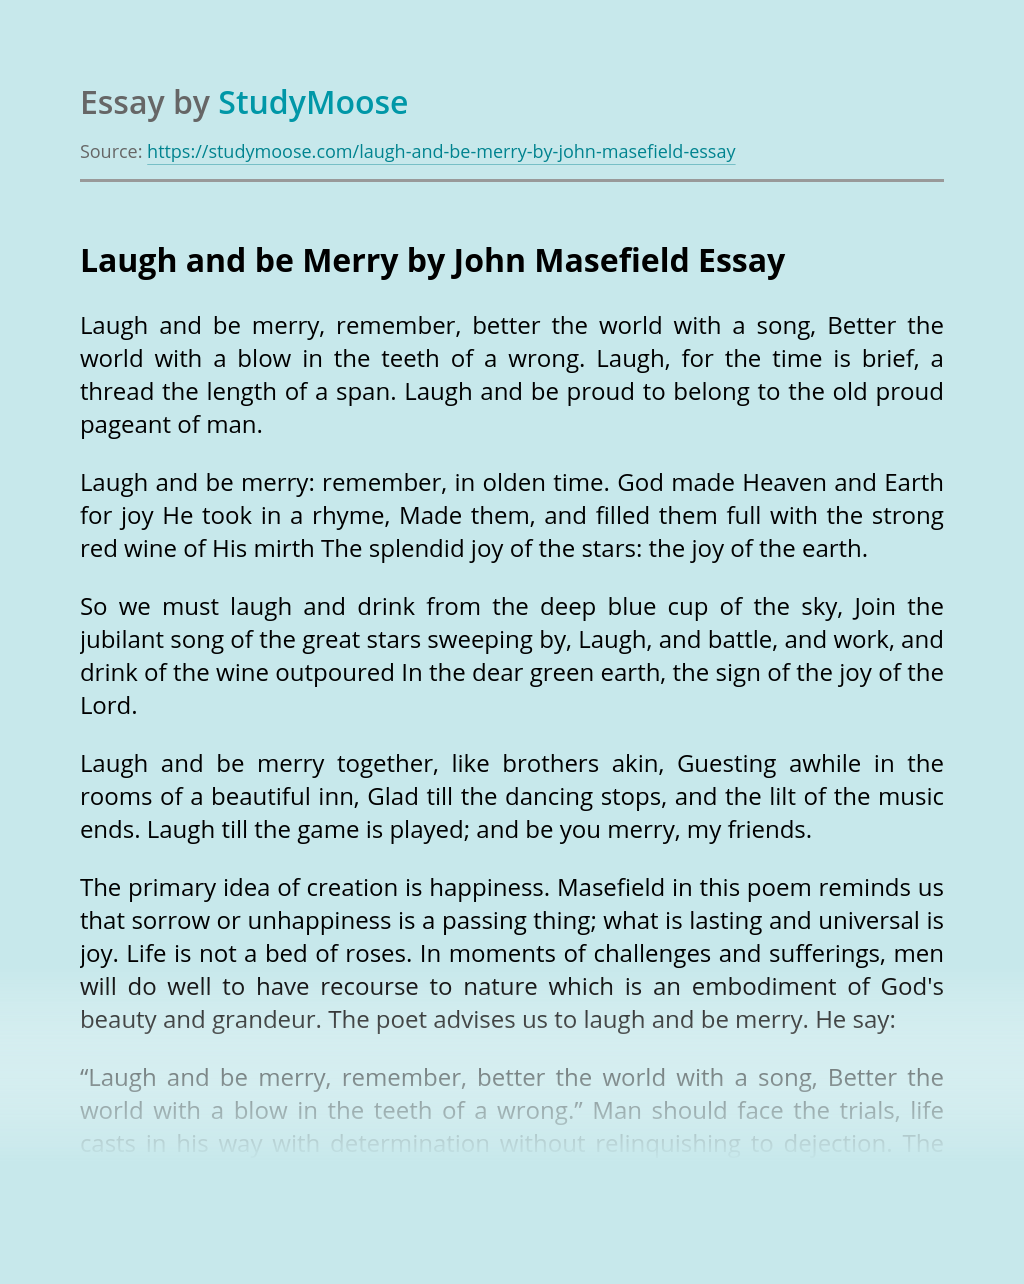 Laugh and be Merry by John Masefield